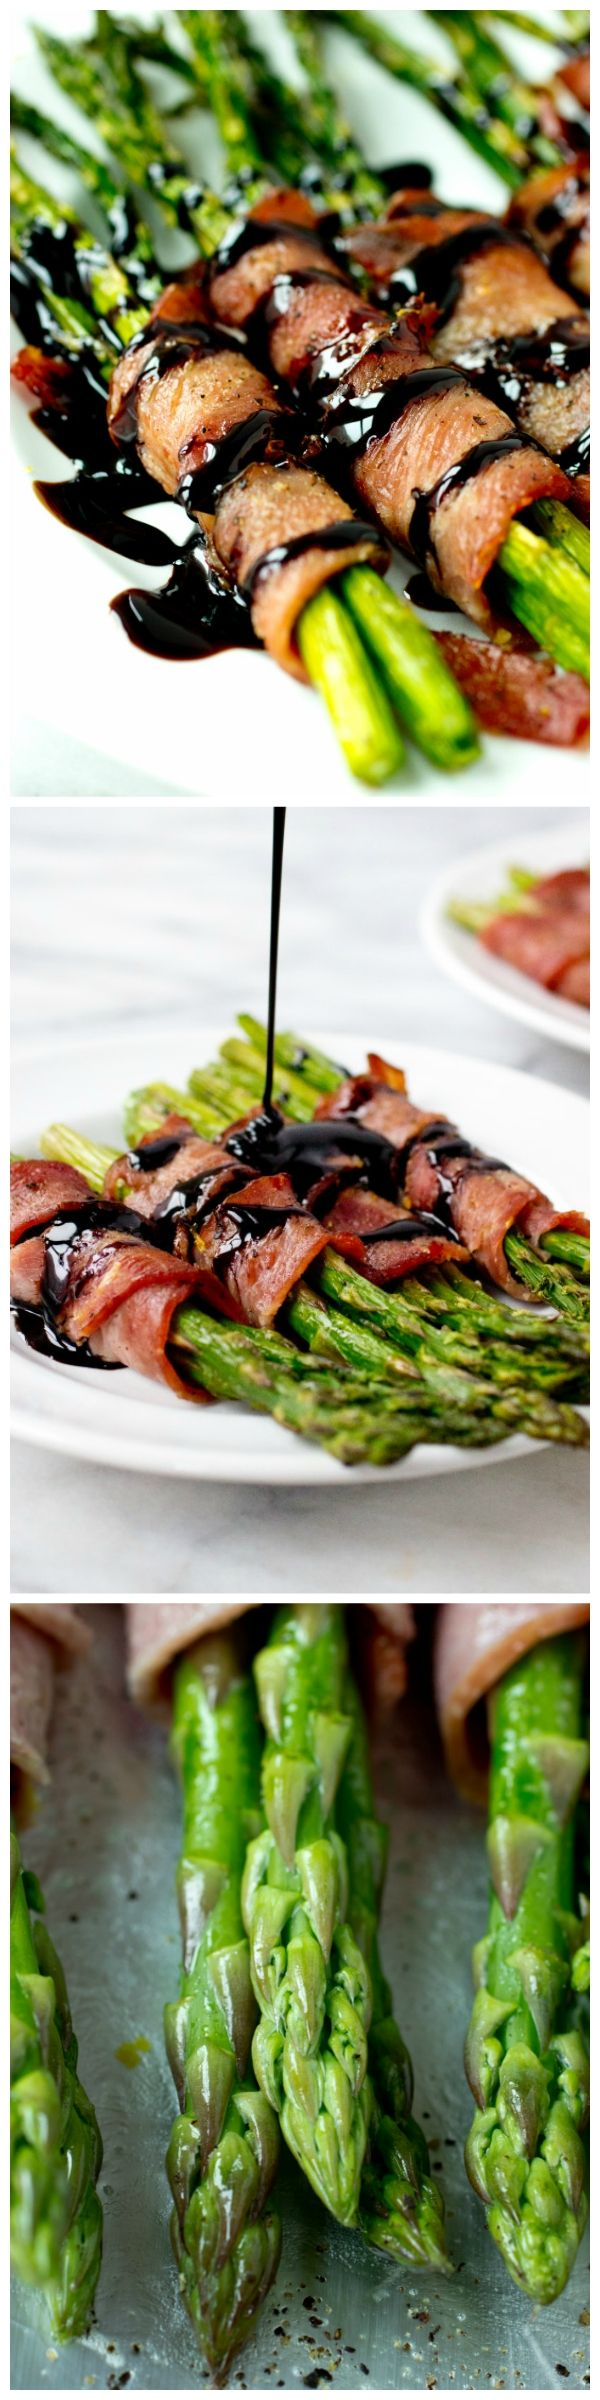 Bacon Wrapped Asparagus with Lemon Balsamic Reduction - Vegetables are so much easier to get down the hatch when they're wrapped in bacon and drizzled in easy homemade balsamic reduction syrup!